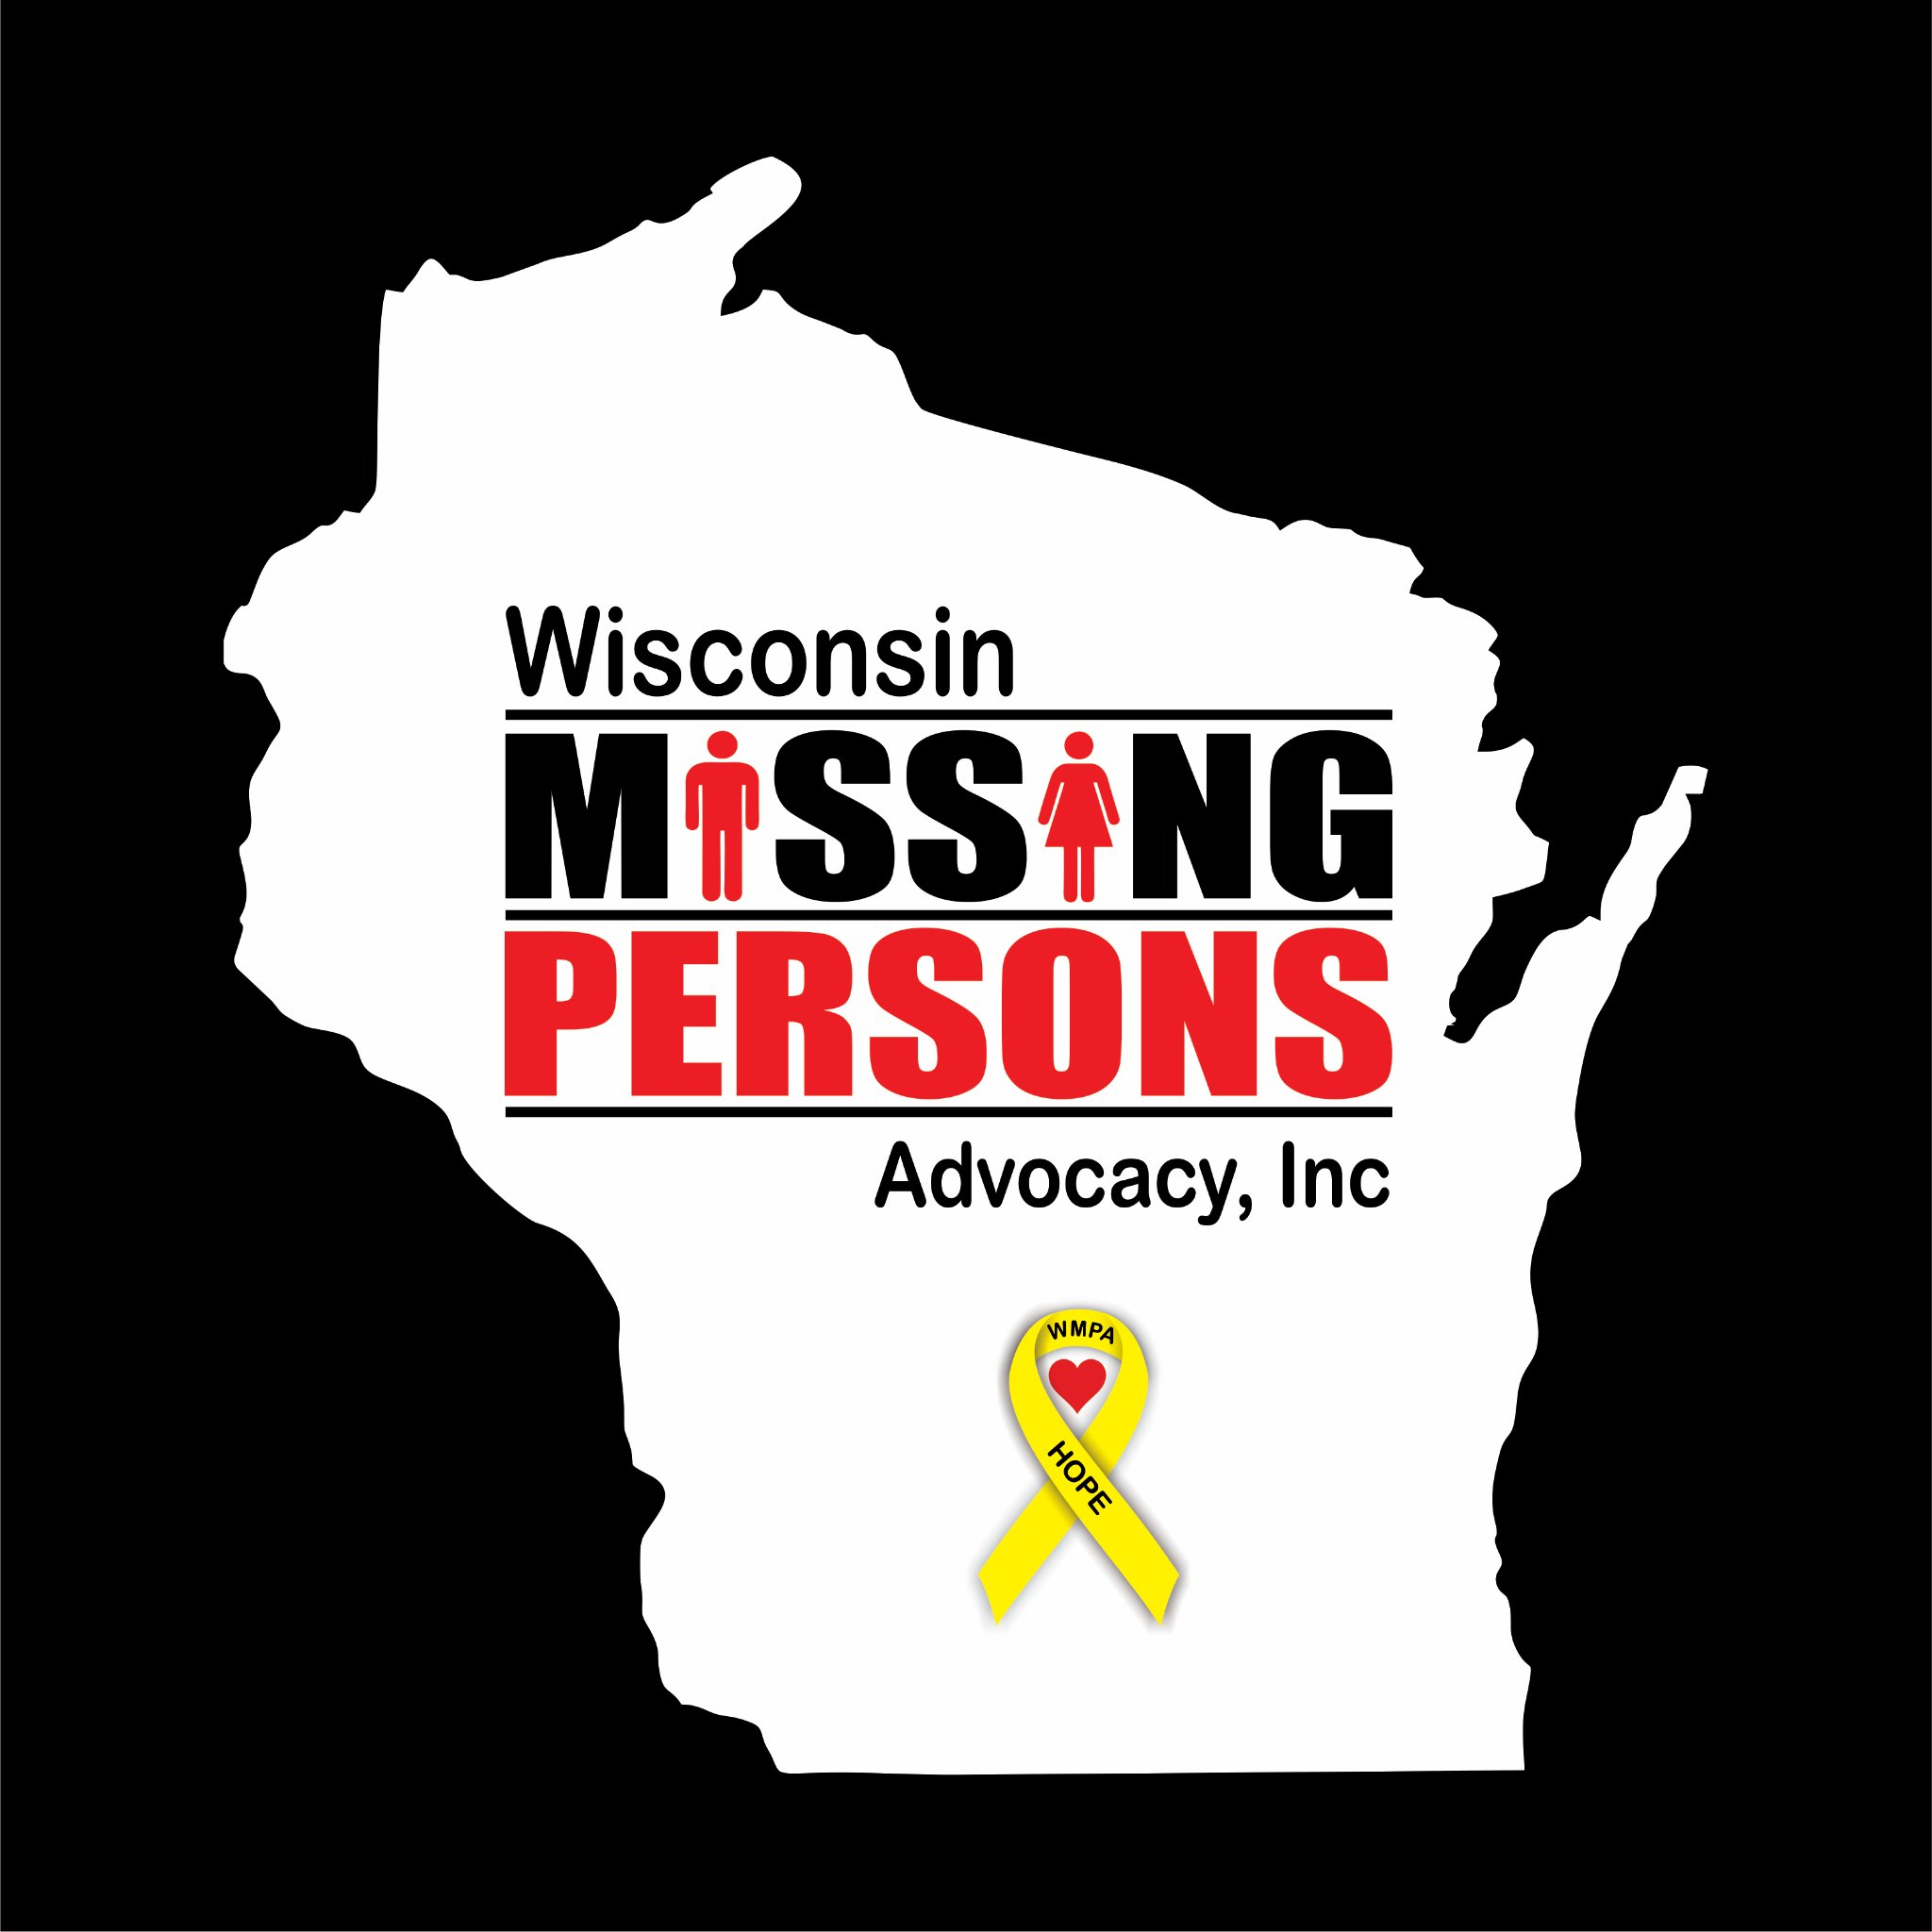 Wisconsin Missing Persons Advocacy, Inc